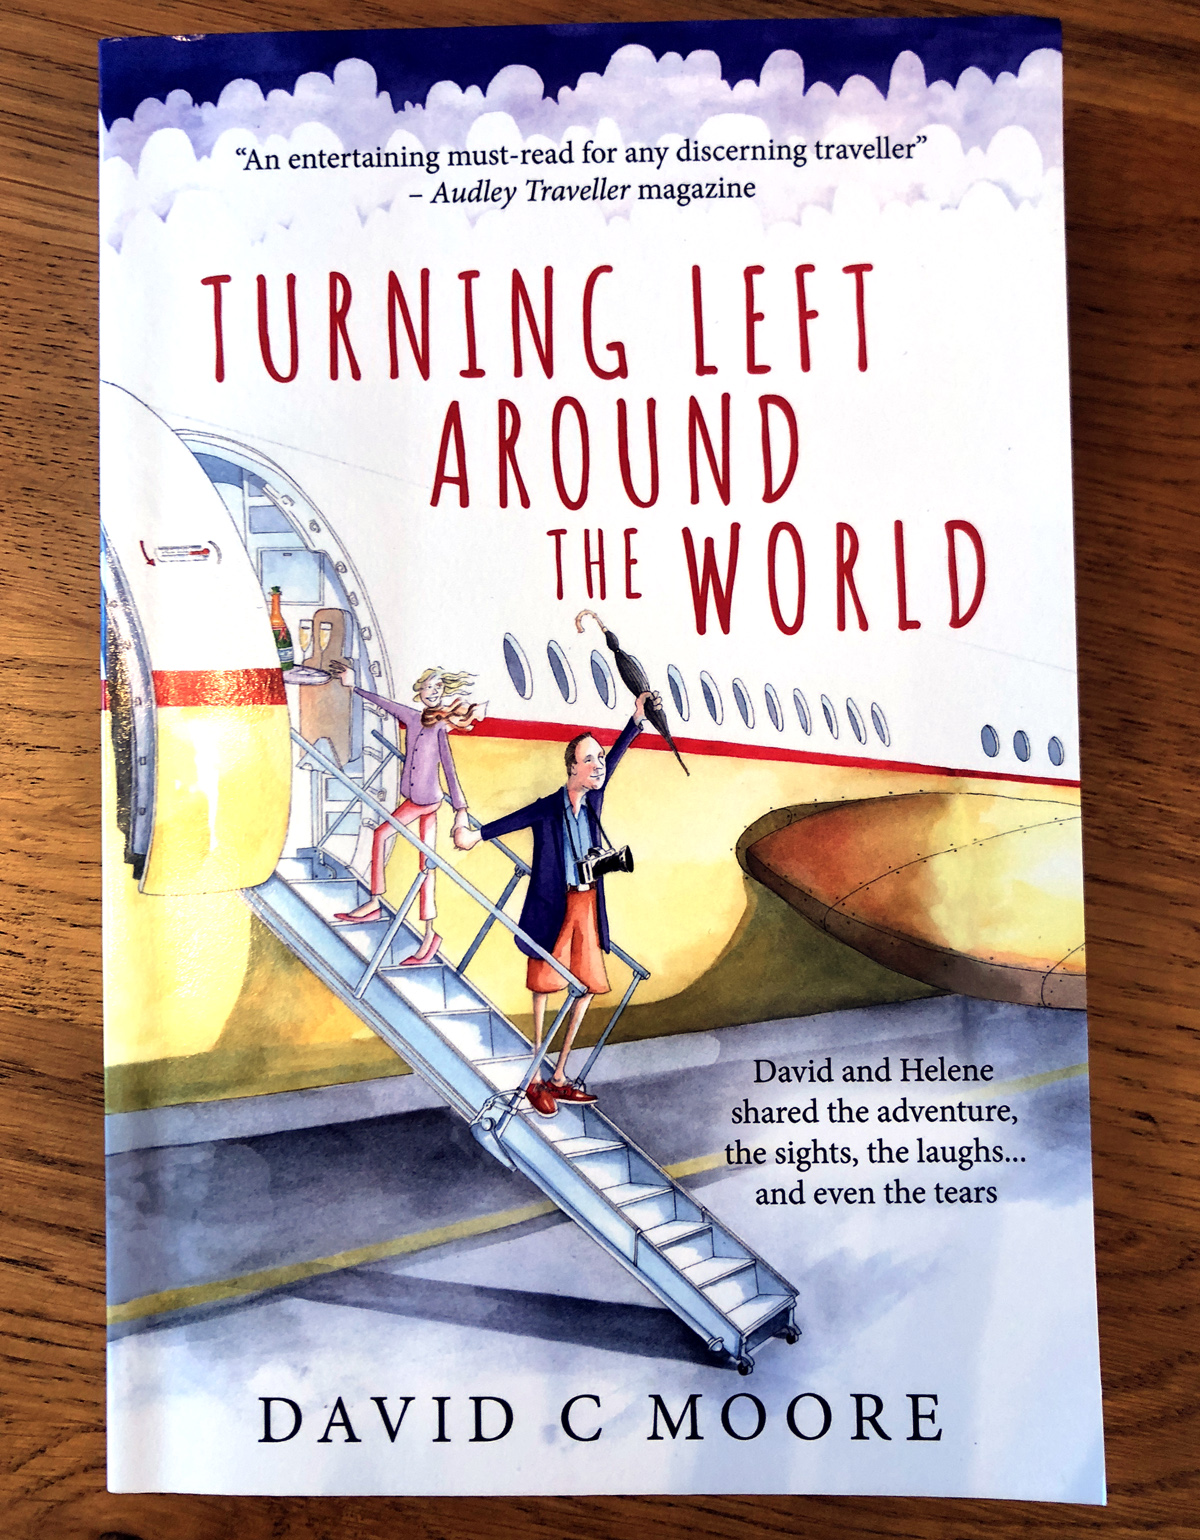 BOOK REVIEW: TURNING LEFT AROUND THE WORLD, DAVID C MOORE